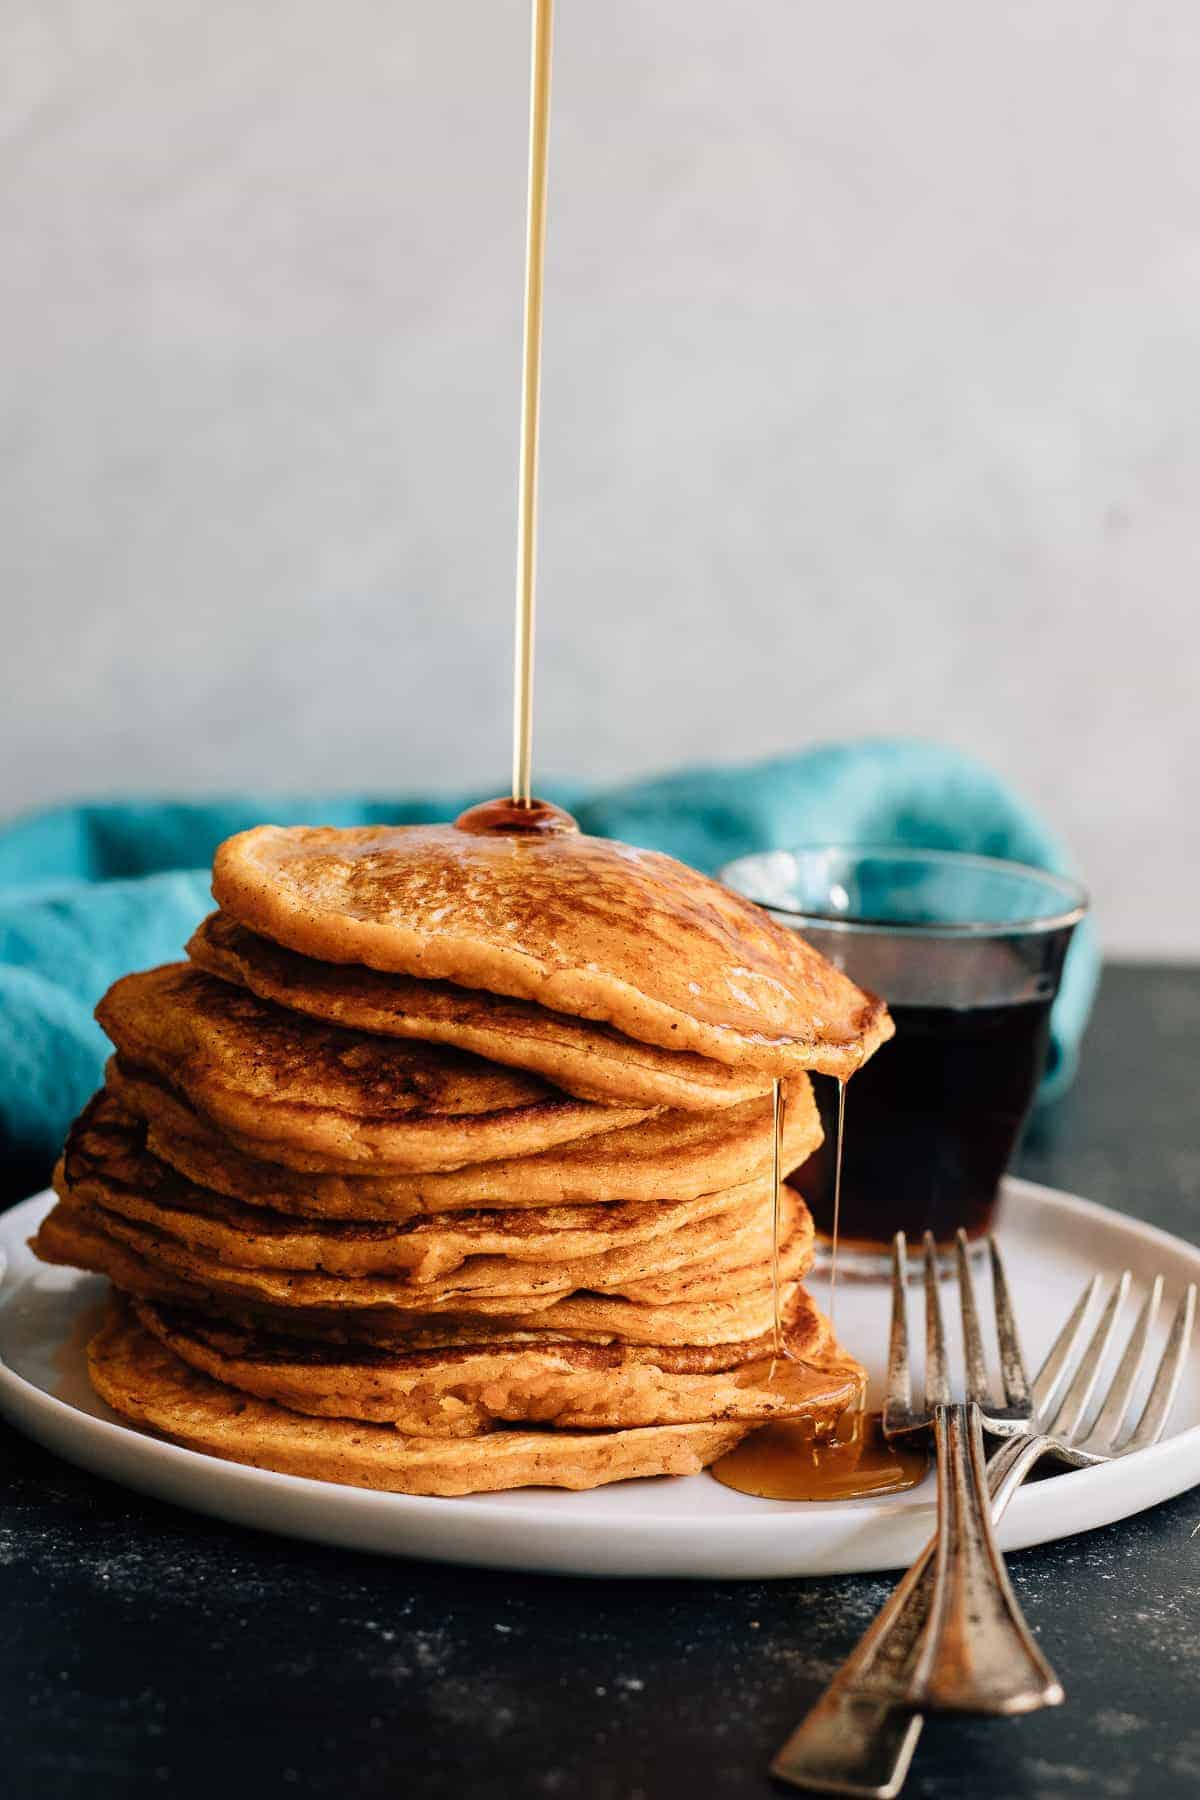 Soft and fluffy sweet potato pancakes made to the extreme with an overdose of spices and sweetened with maple syrup. Fall breakfast perfection.